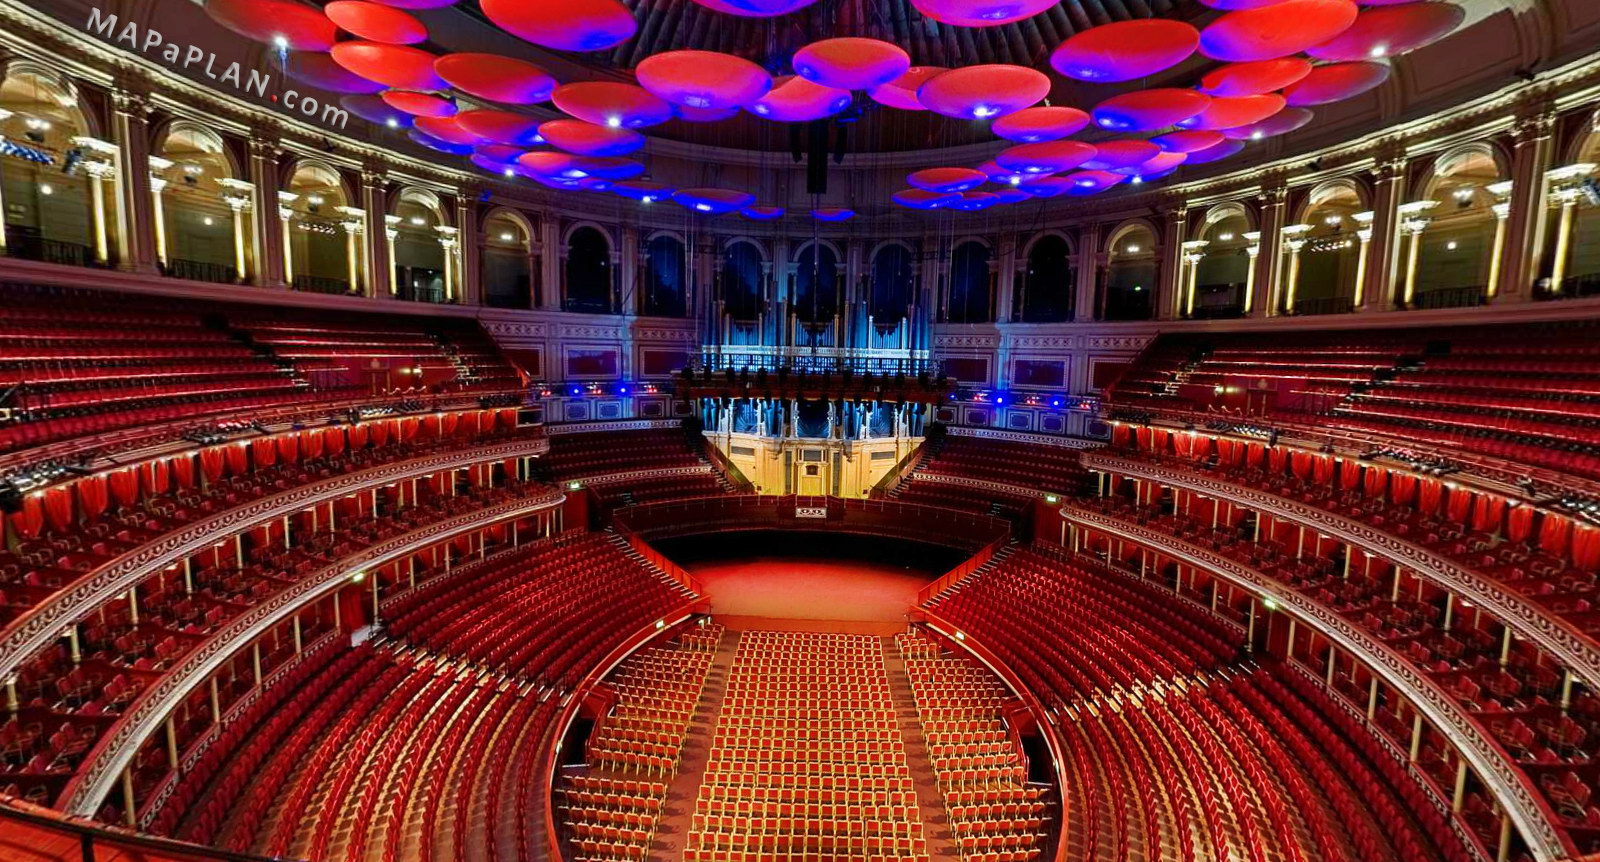 royal-albert-hall-seating-plan-14-circle-u-row-4-seat-116-inside-view-photo-high-resolution.jpg